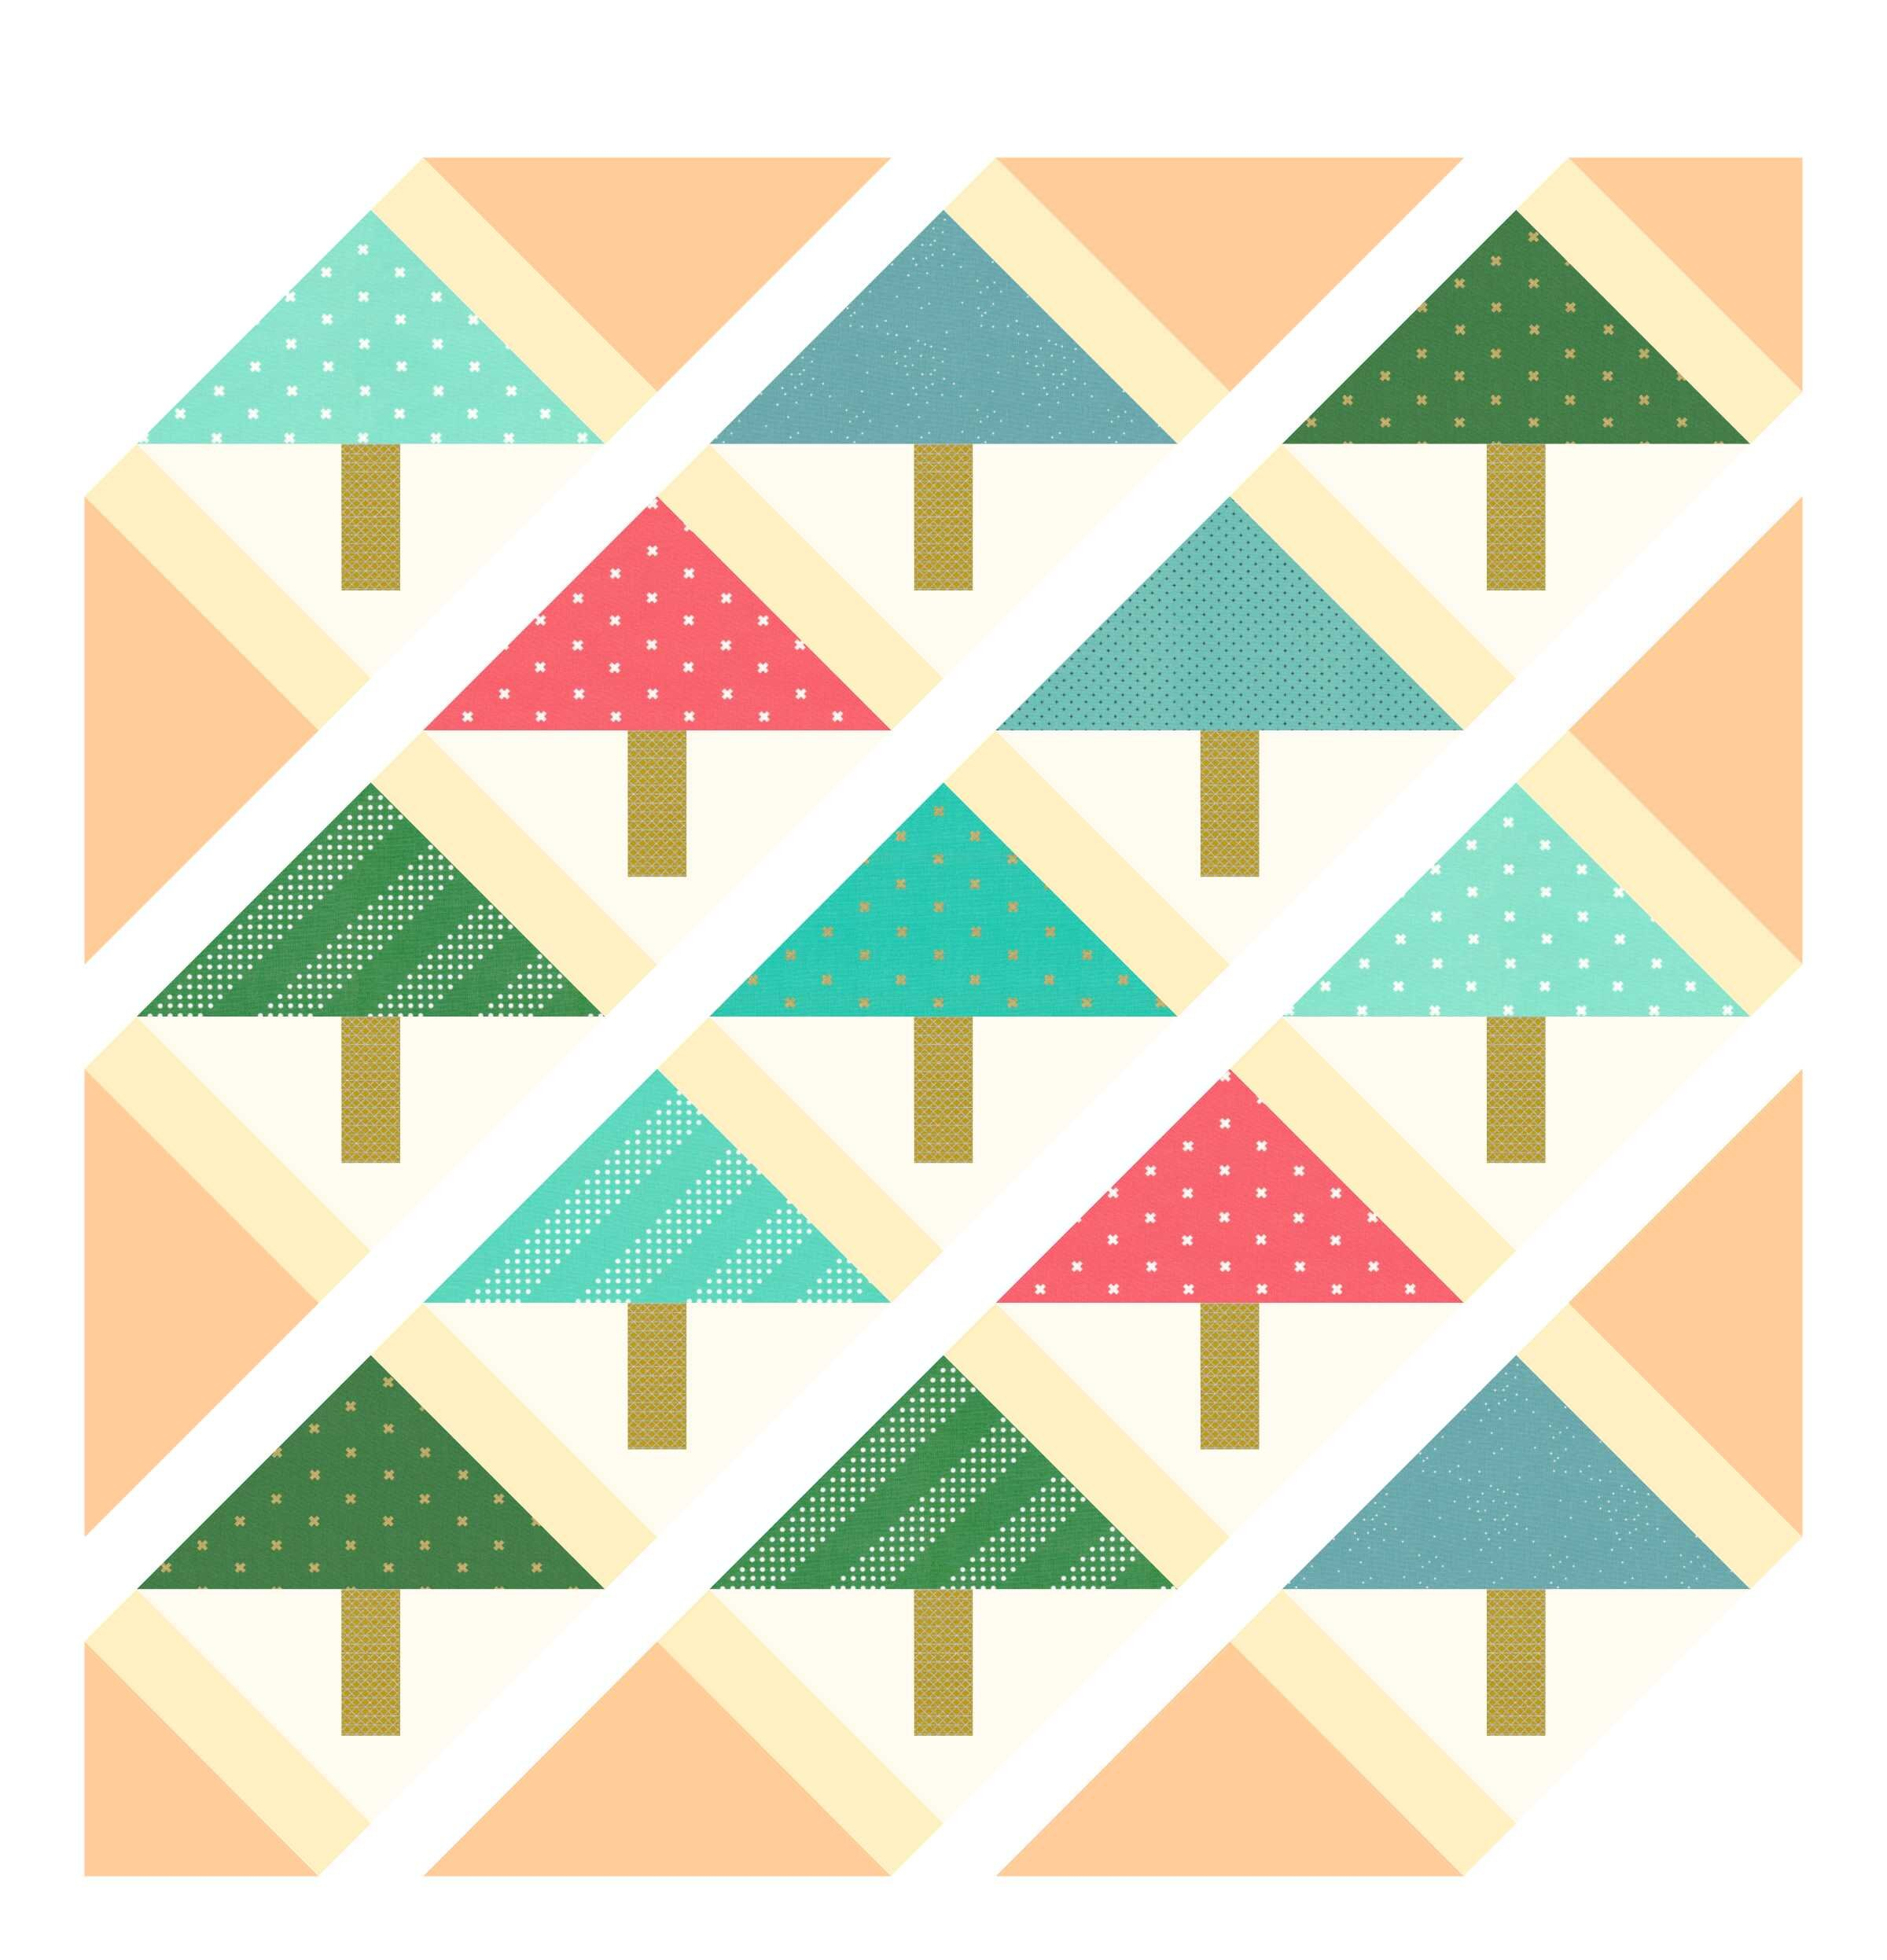 The sashing squares, edge triangles, and corner triangles are intentionally darker to make them easier to see.